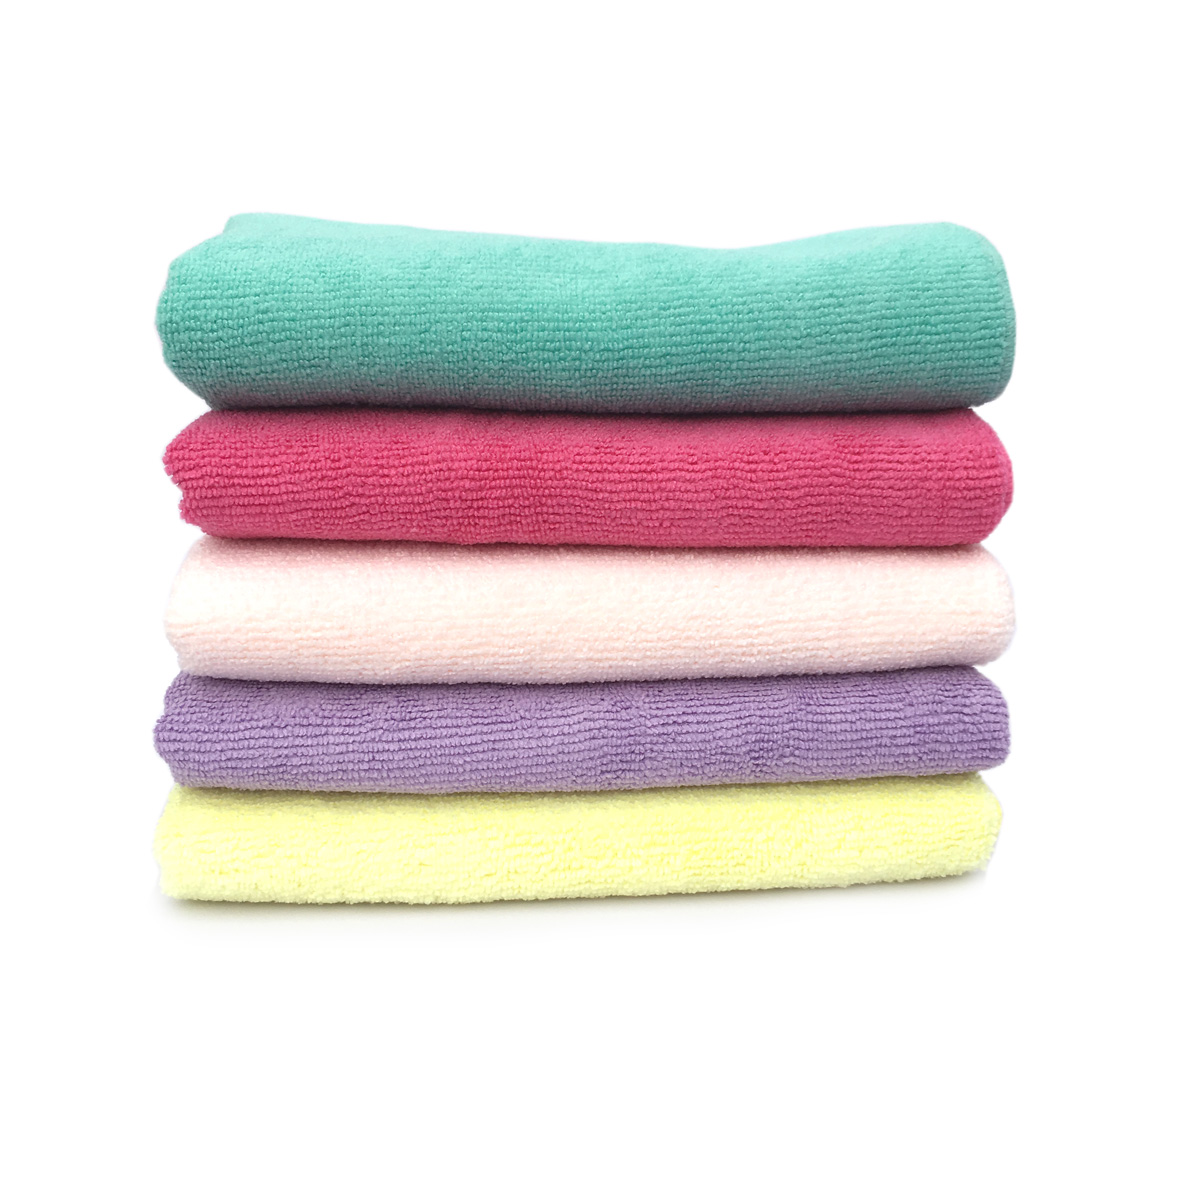 Towels Multi-purpose Microfiber Soft Fast Drying Travel Gym Home Office Washcloths 5-pack(13 x 28 Inch) (5-Color)